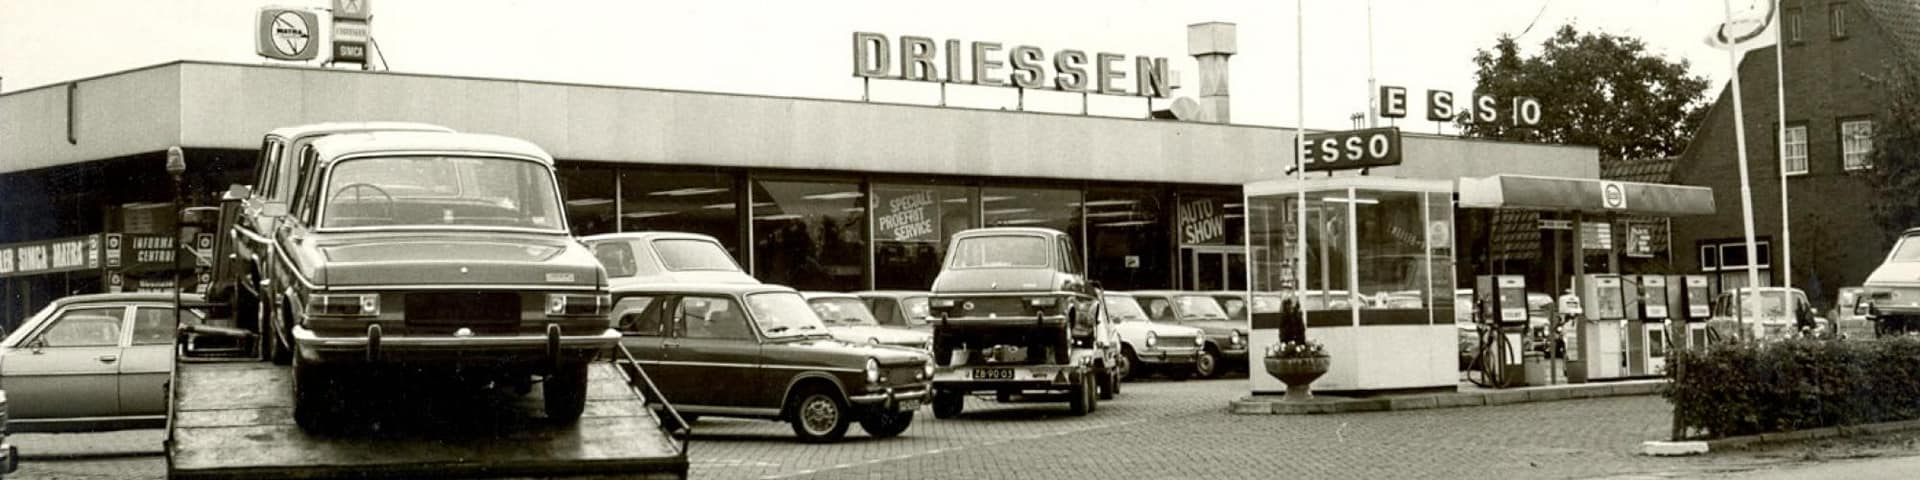 Simca-Dealer-Driessen-Den-Bosch--1